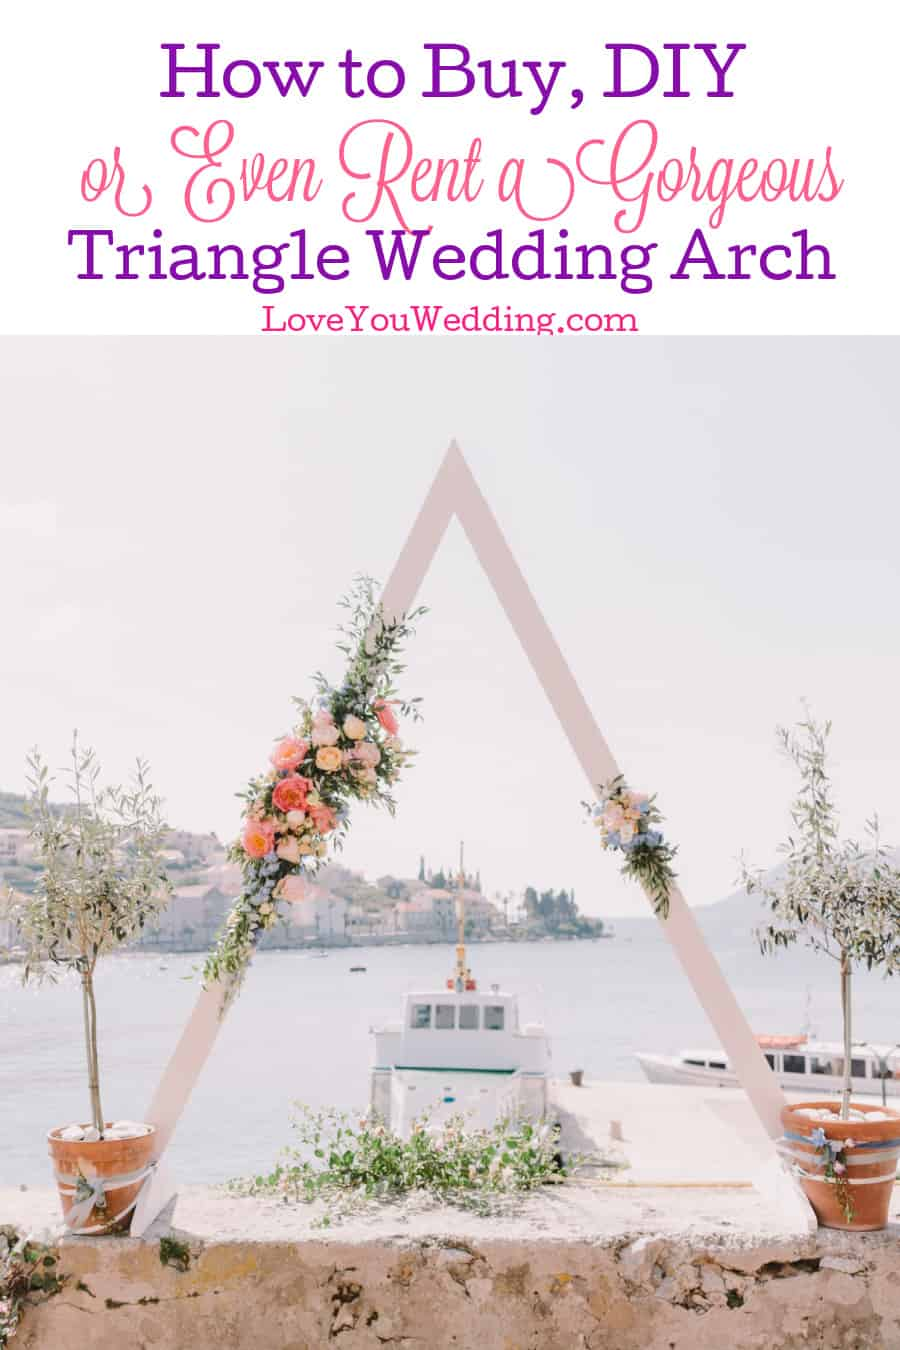 Want to include one of those stunning triangle wedding arches you keep seeing? Check out our guide for how to build, buy or rent one!